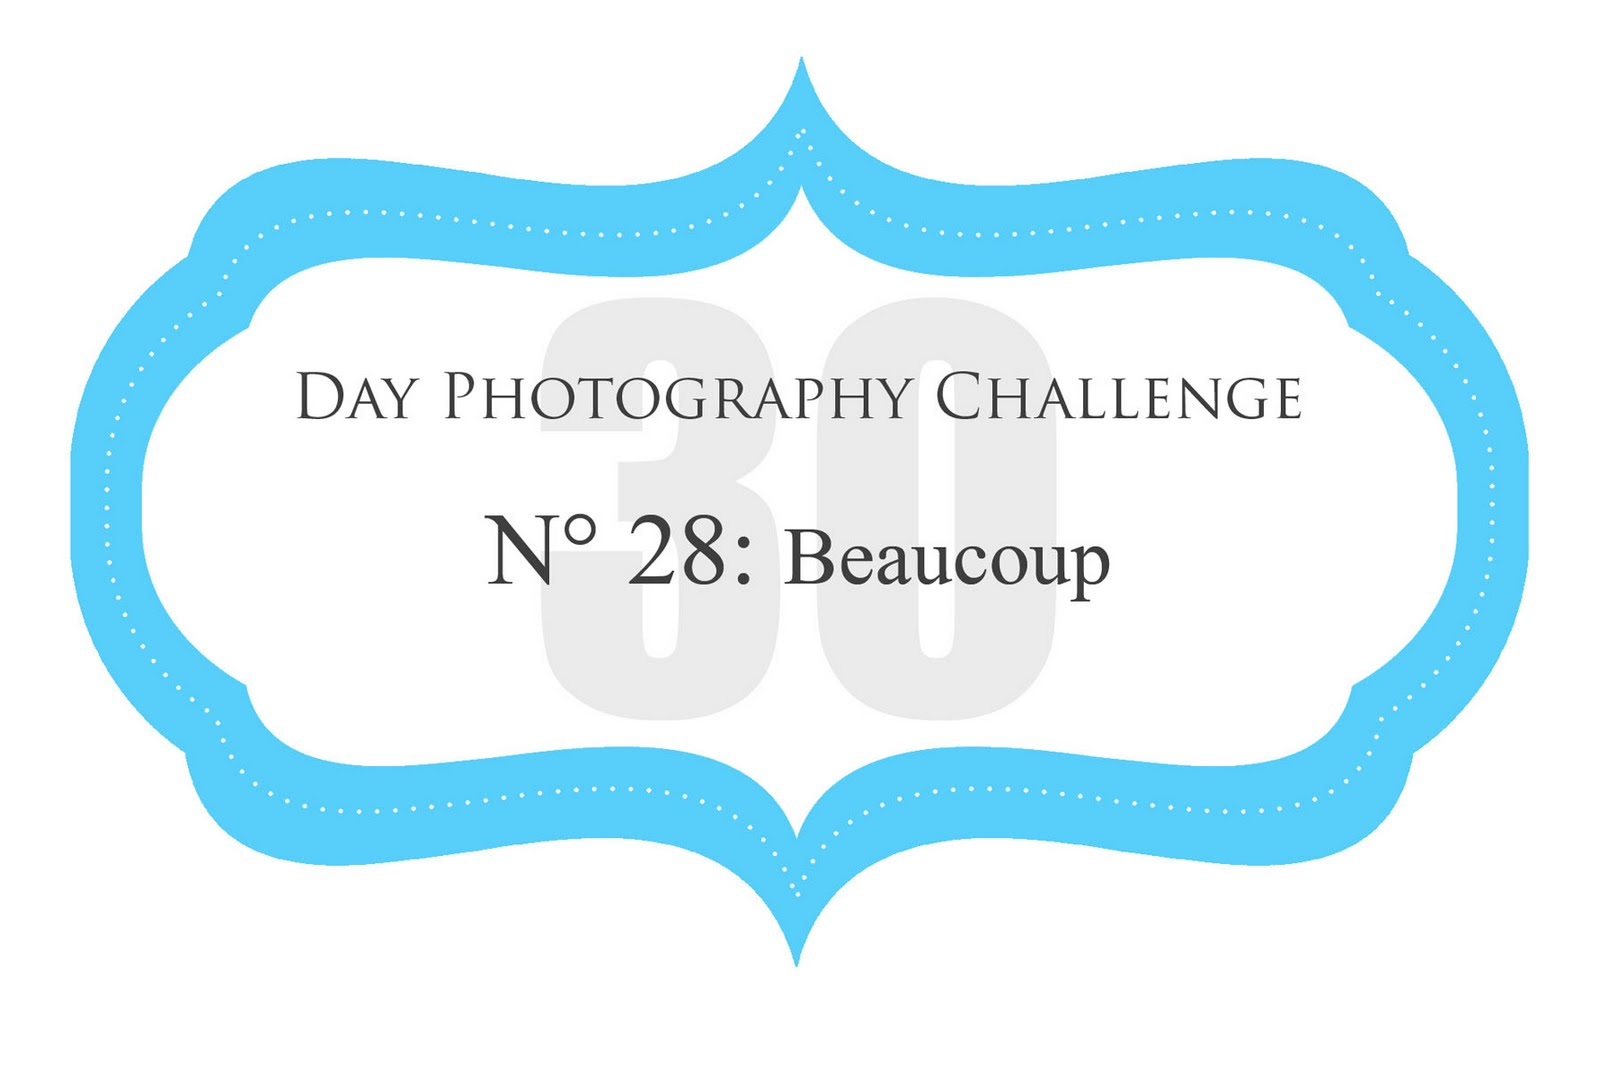 Day 28 - Photography Challenge